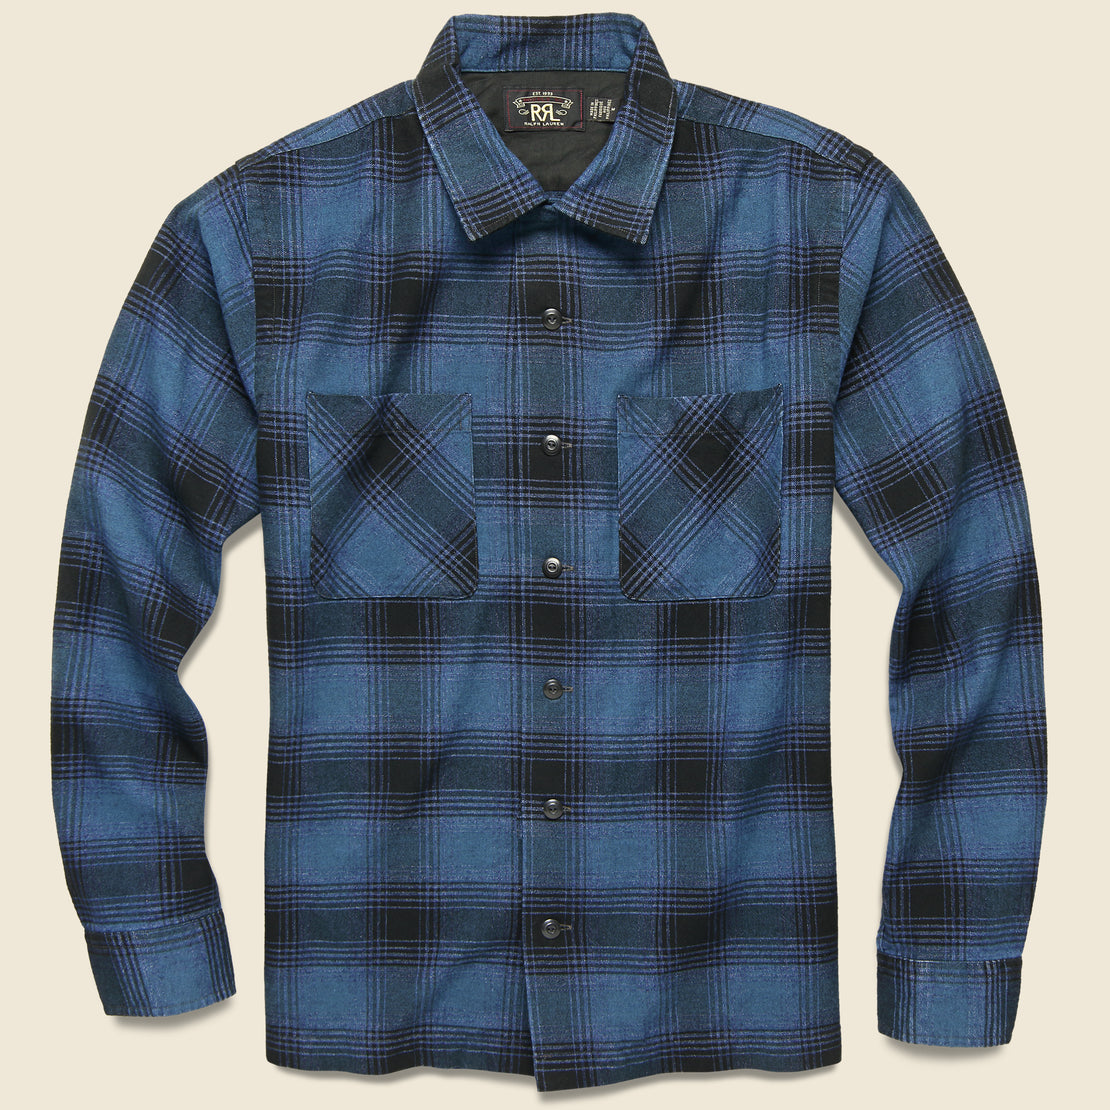 RRL Brushed Towns Camp Shirt - Indigo/Black Ombré Plaid